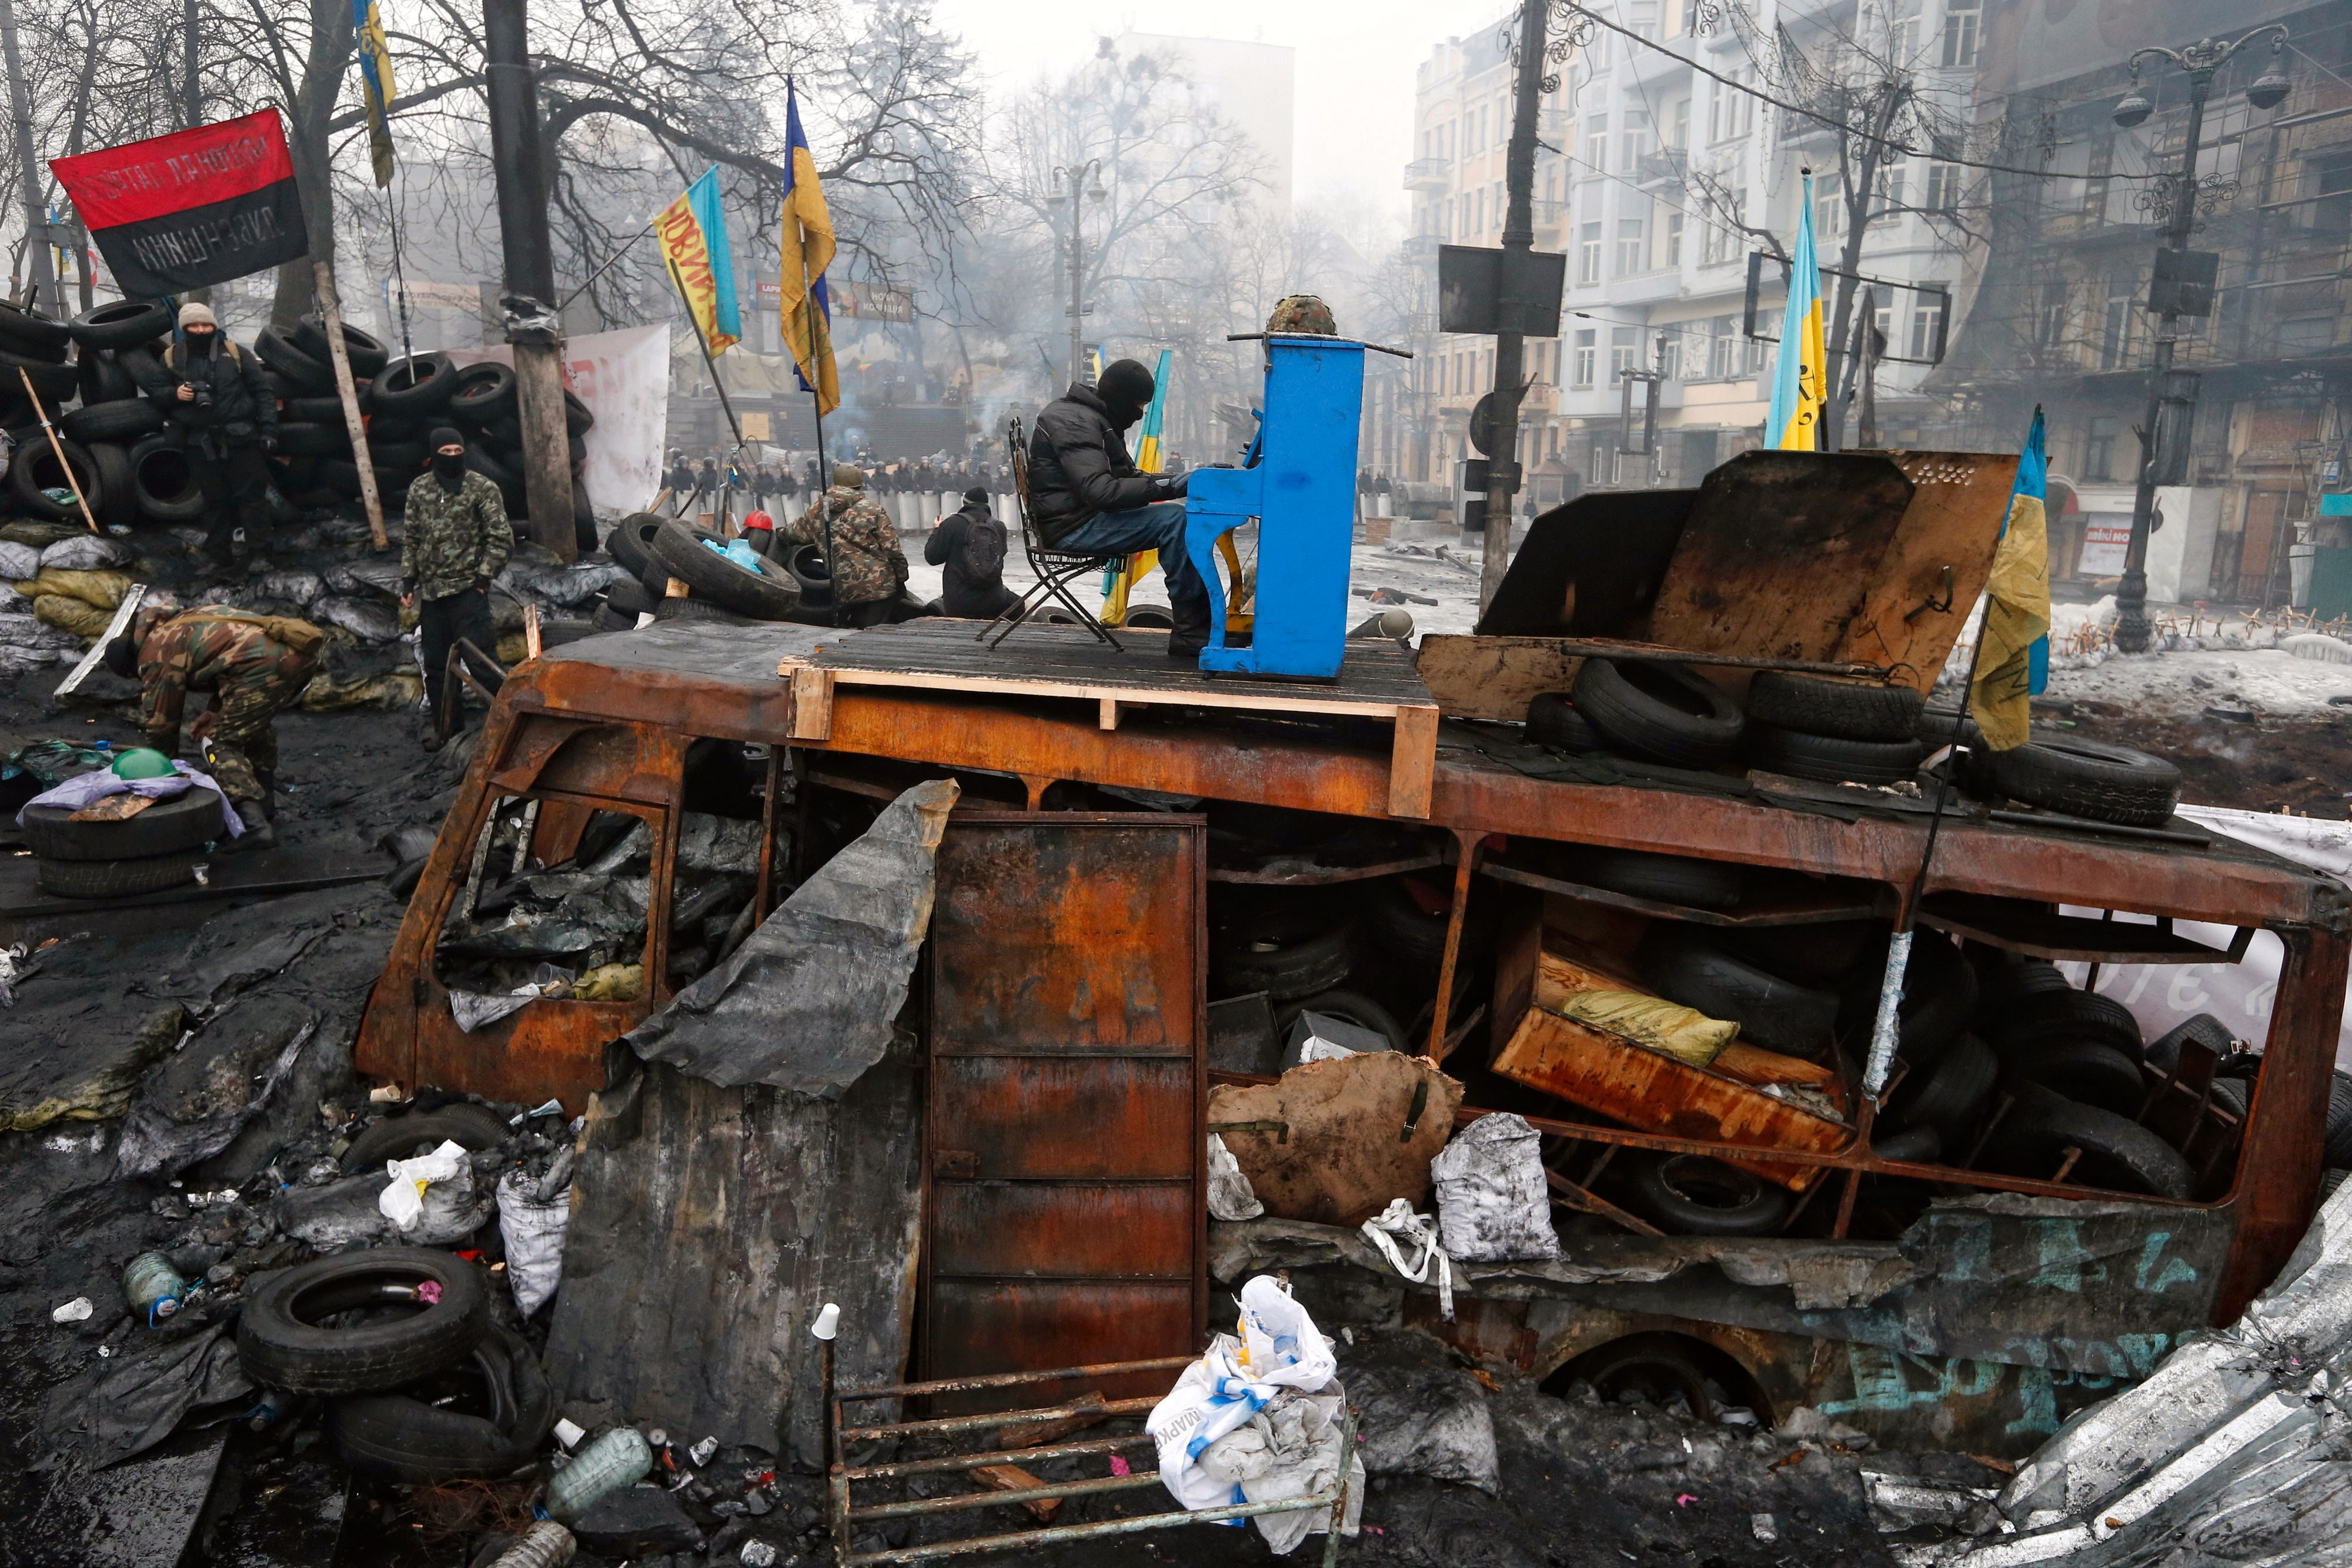 Ukrainian protester plays piano on a barricade in front of the riot police line during the continuing protest in Kiev, Ukraine 10.02.2014. Foto: Vladyslav Musiienko / UNIAN, Ukraine, Shortlist, Current Affairs, Professional Competition, 2015 Sony World Photography Awards